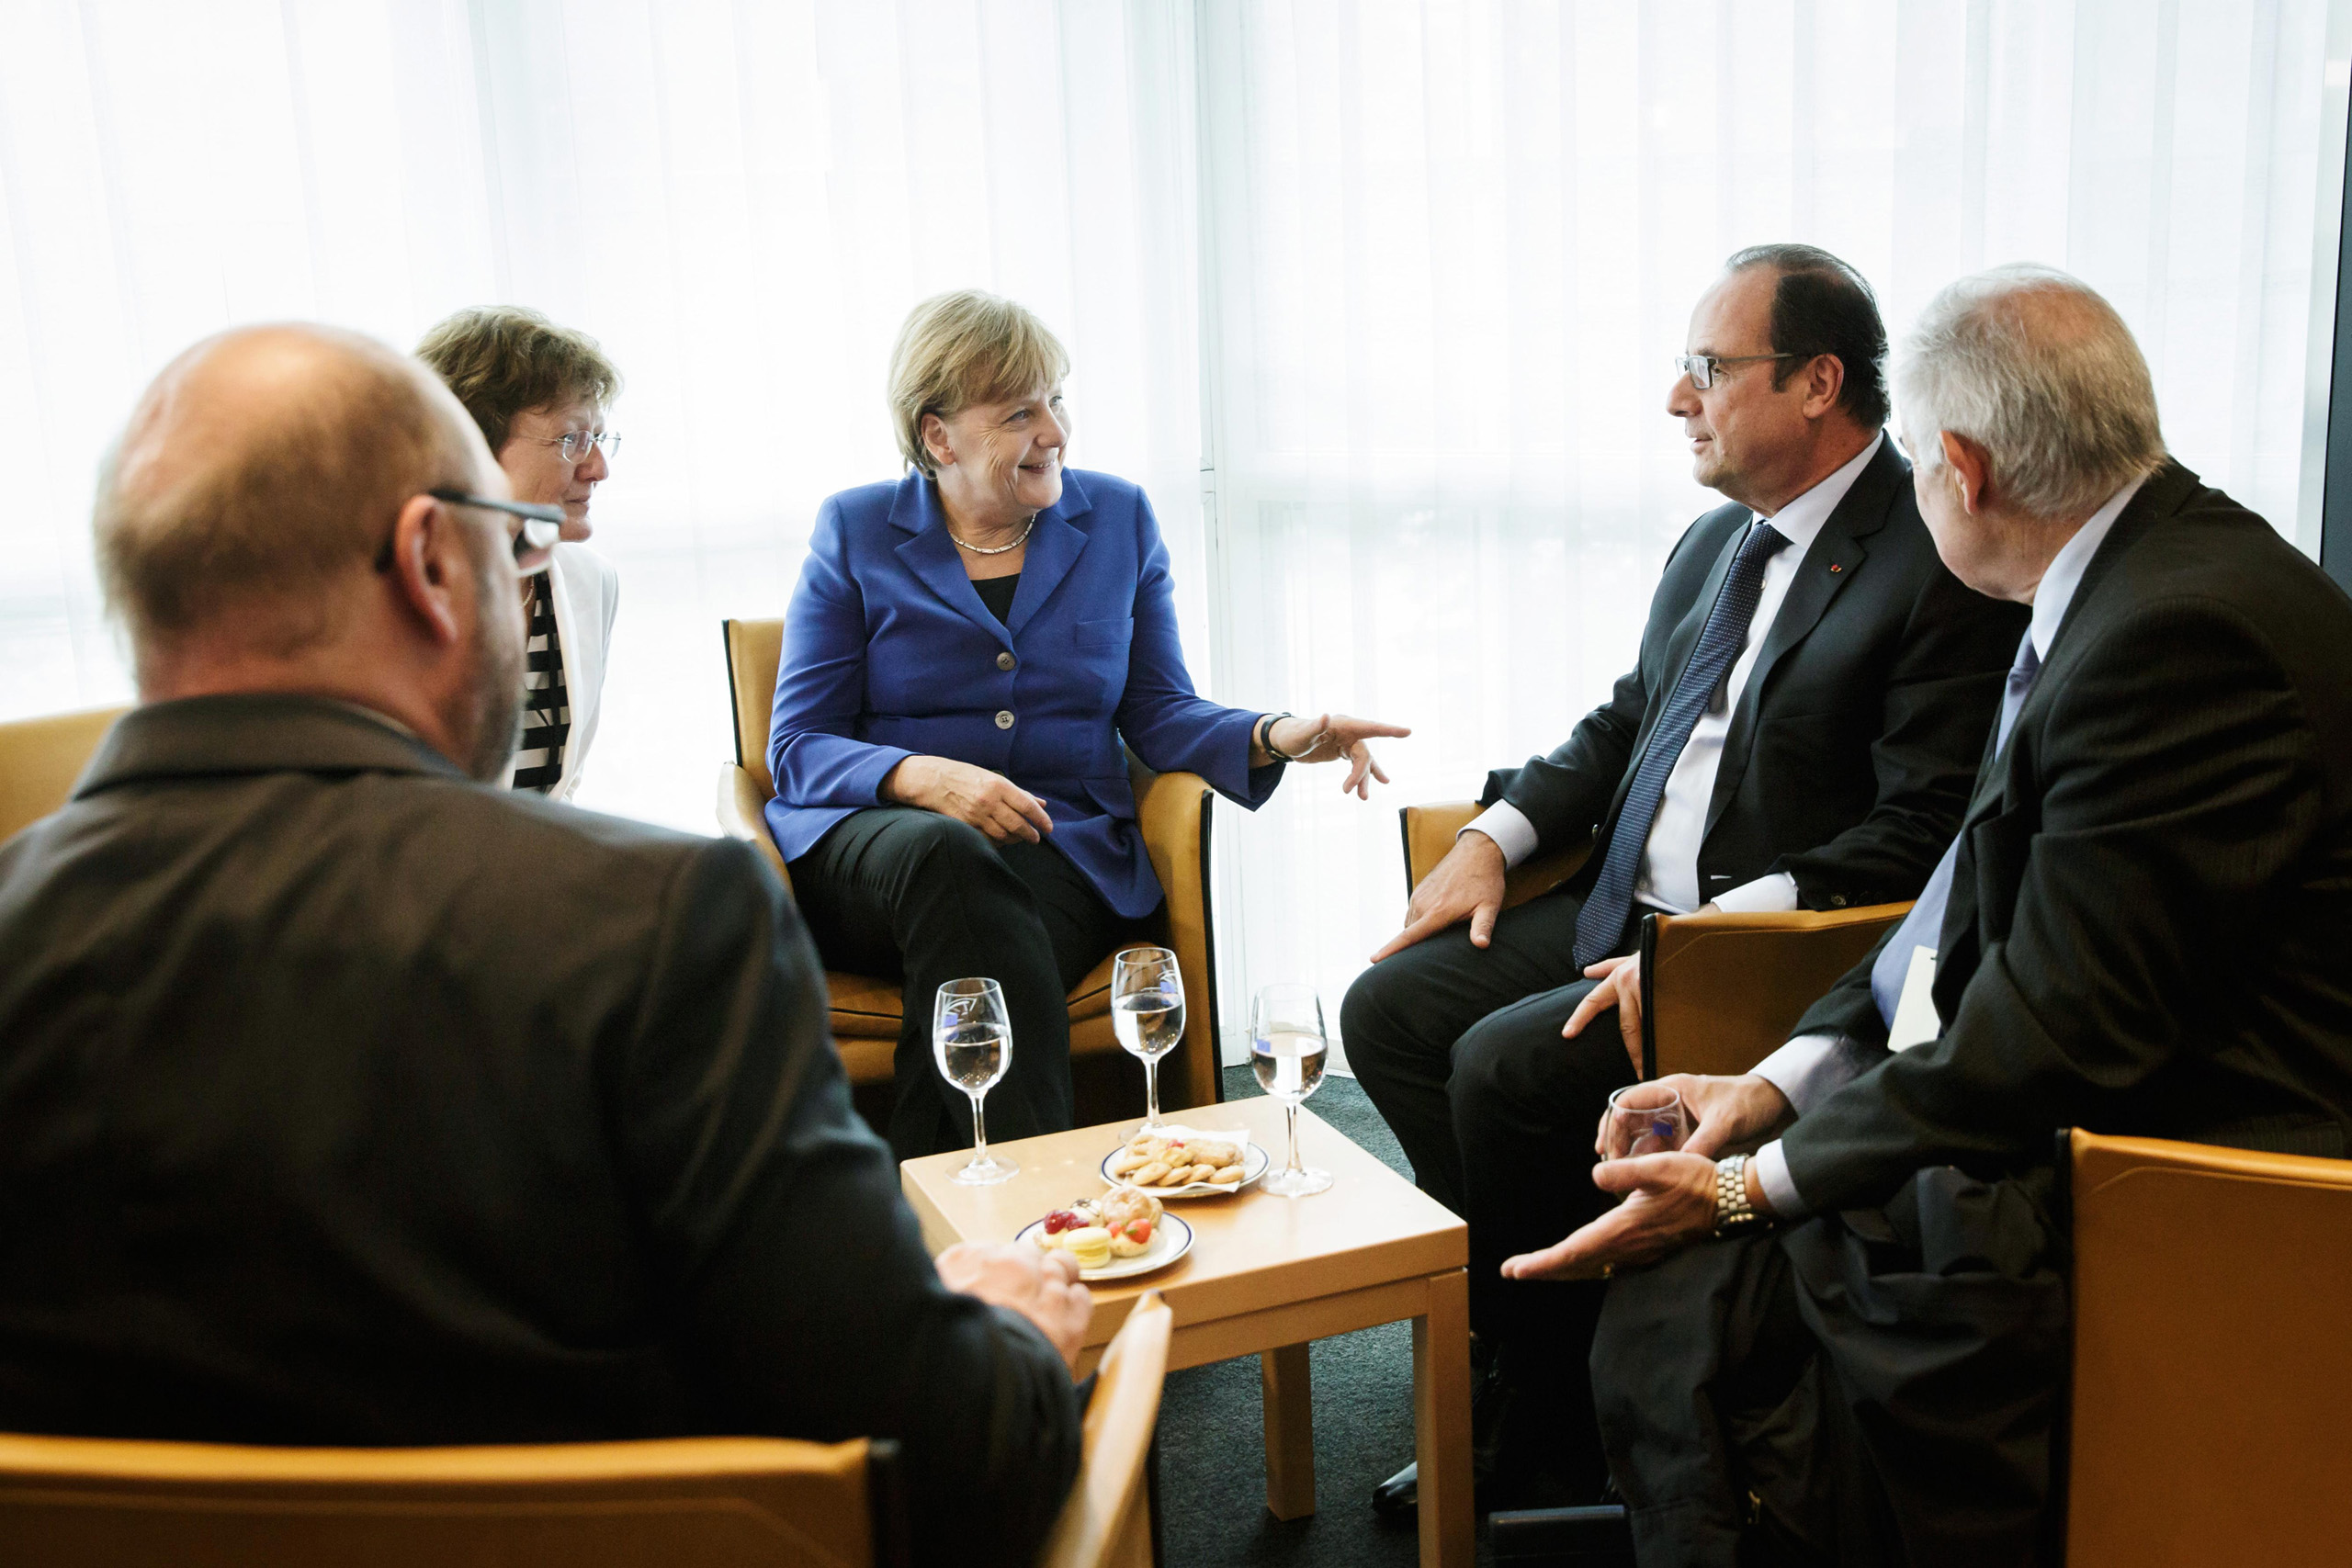 Chancellor Merkel in a discussion with Martin Schulz (President of European Parliament; left) and French president Francois Hollande in the European Parliament Building in Strasbourg, France. Oct. 7, 2015.